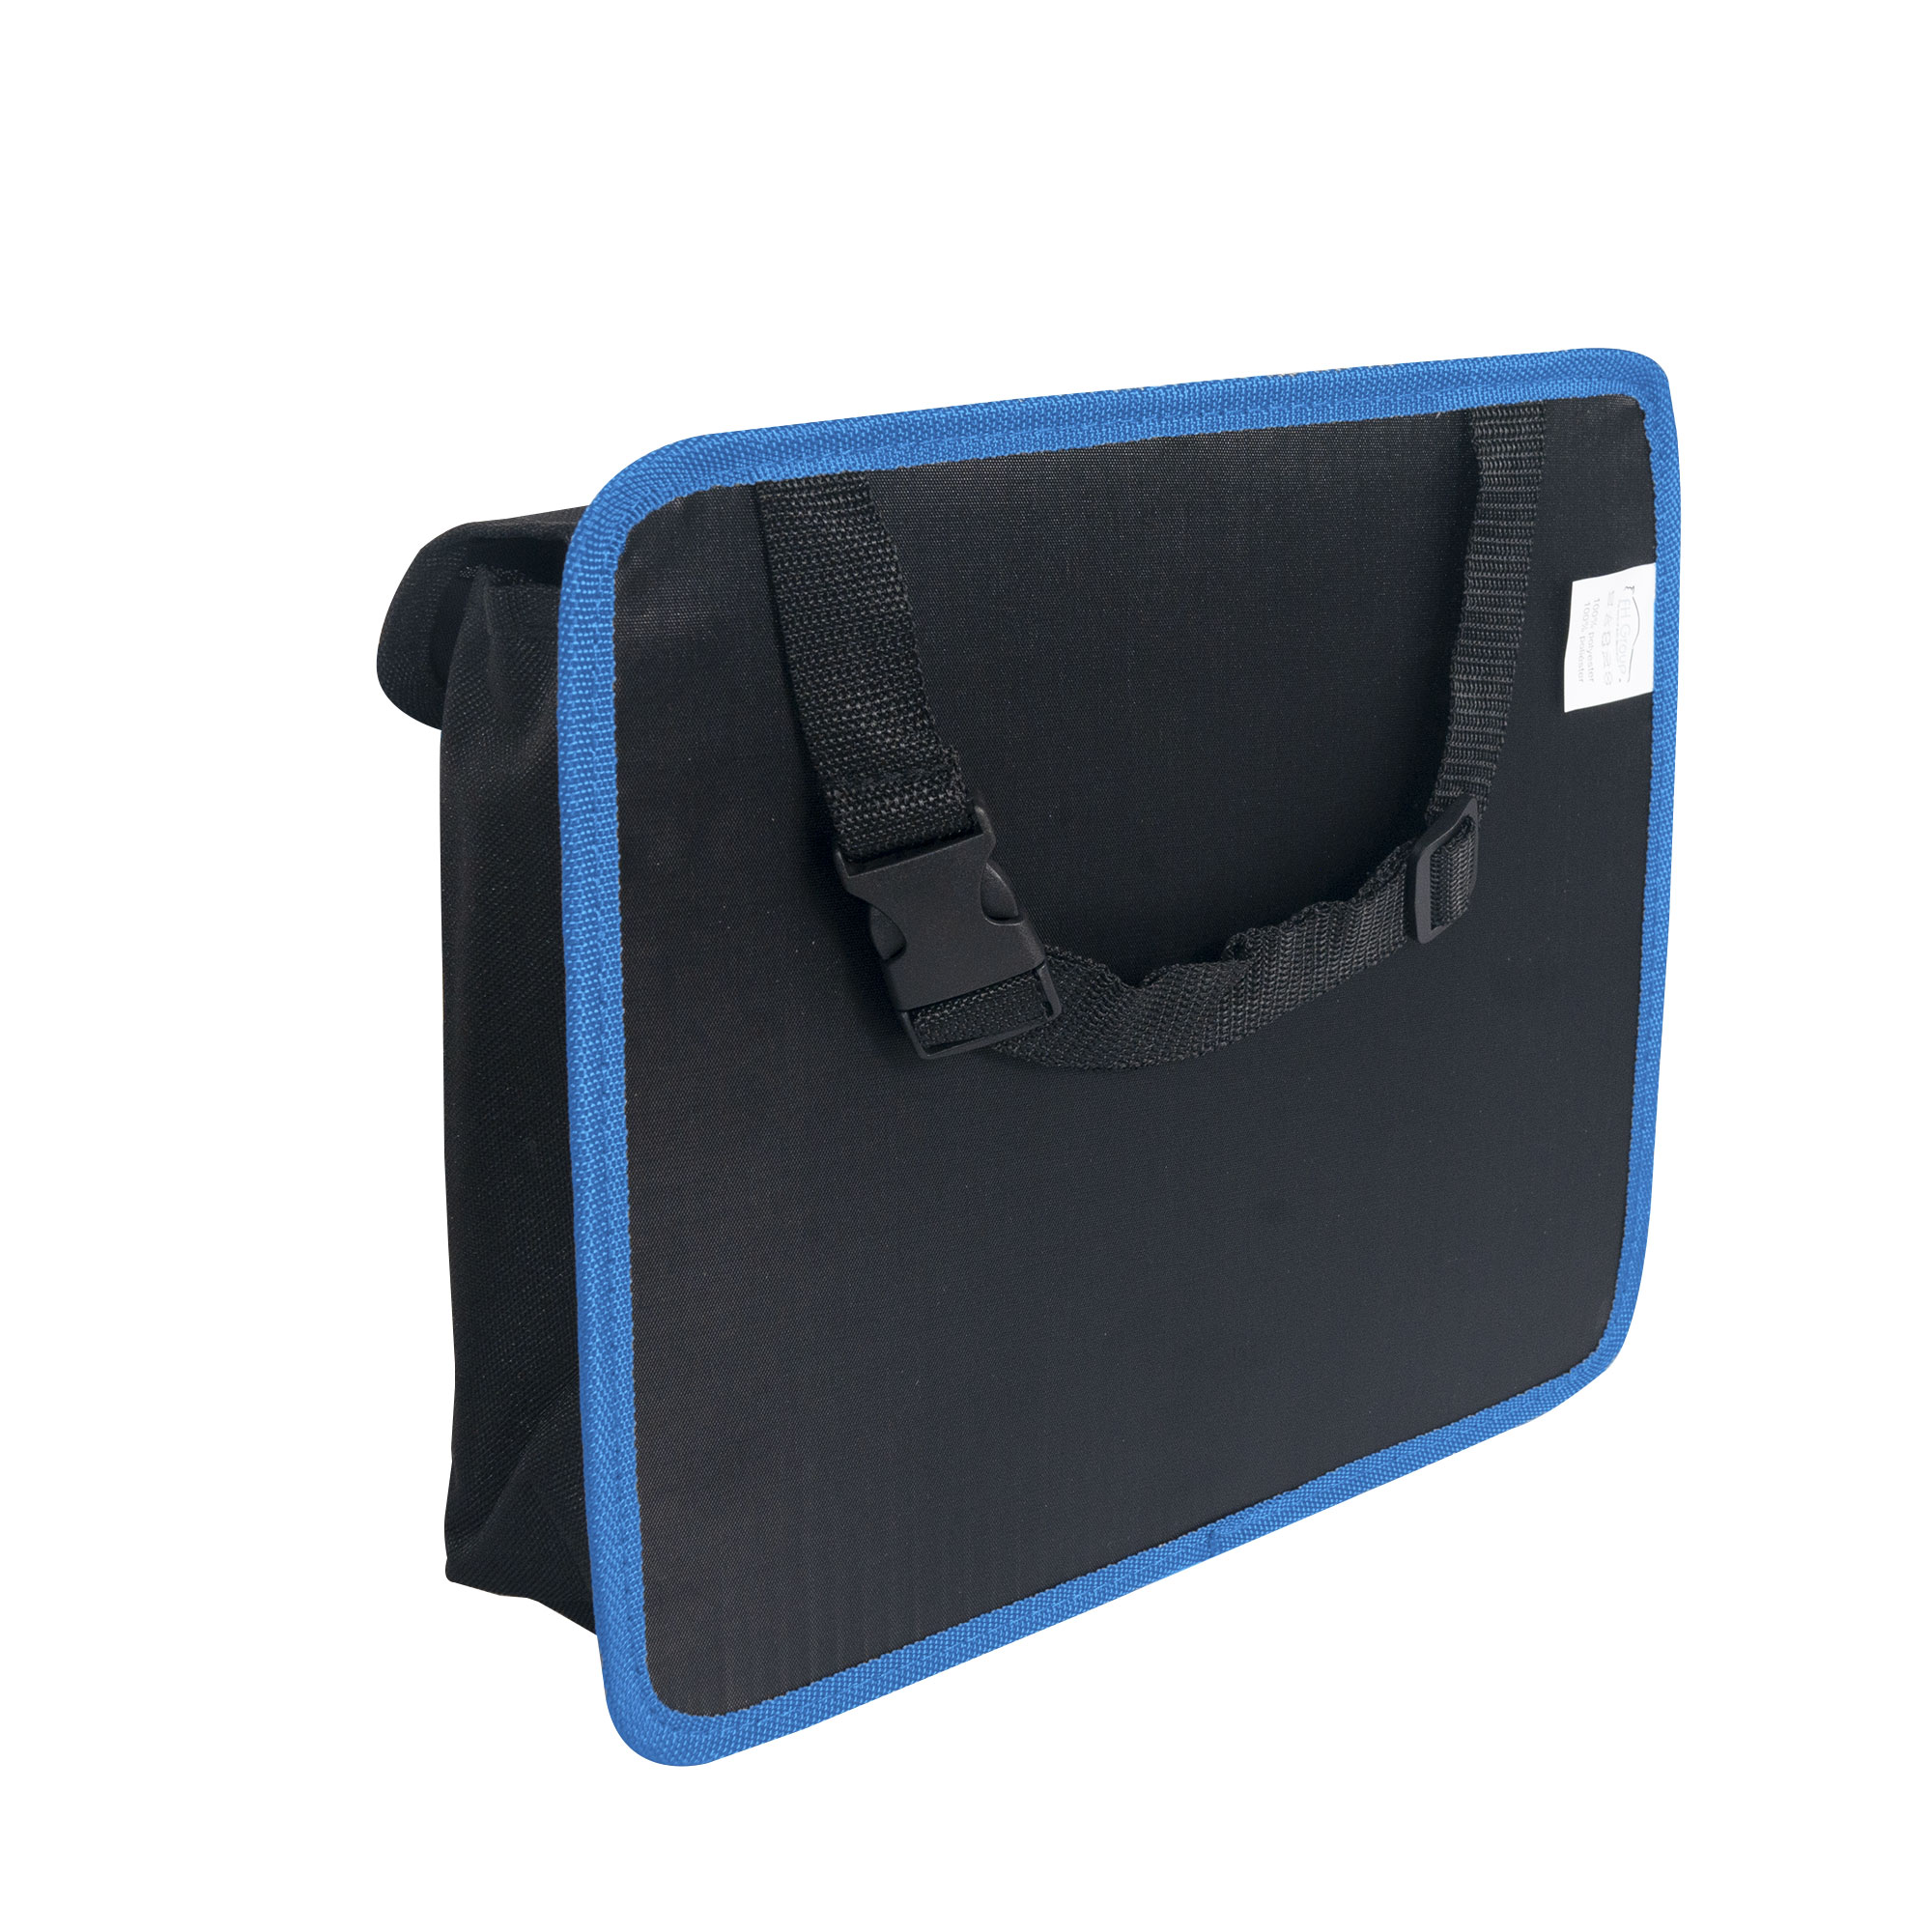 fh1136 blue Tissue Dispenser 1